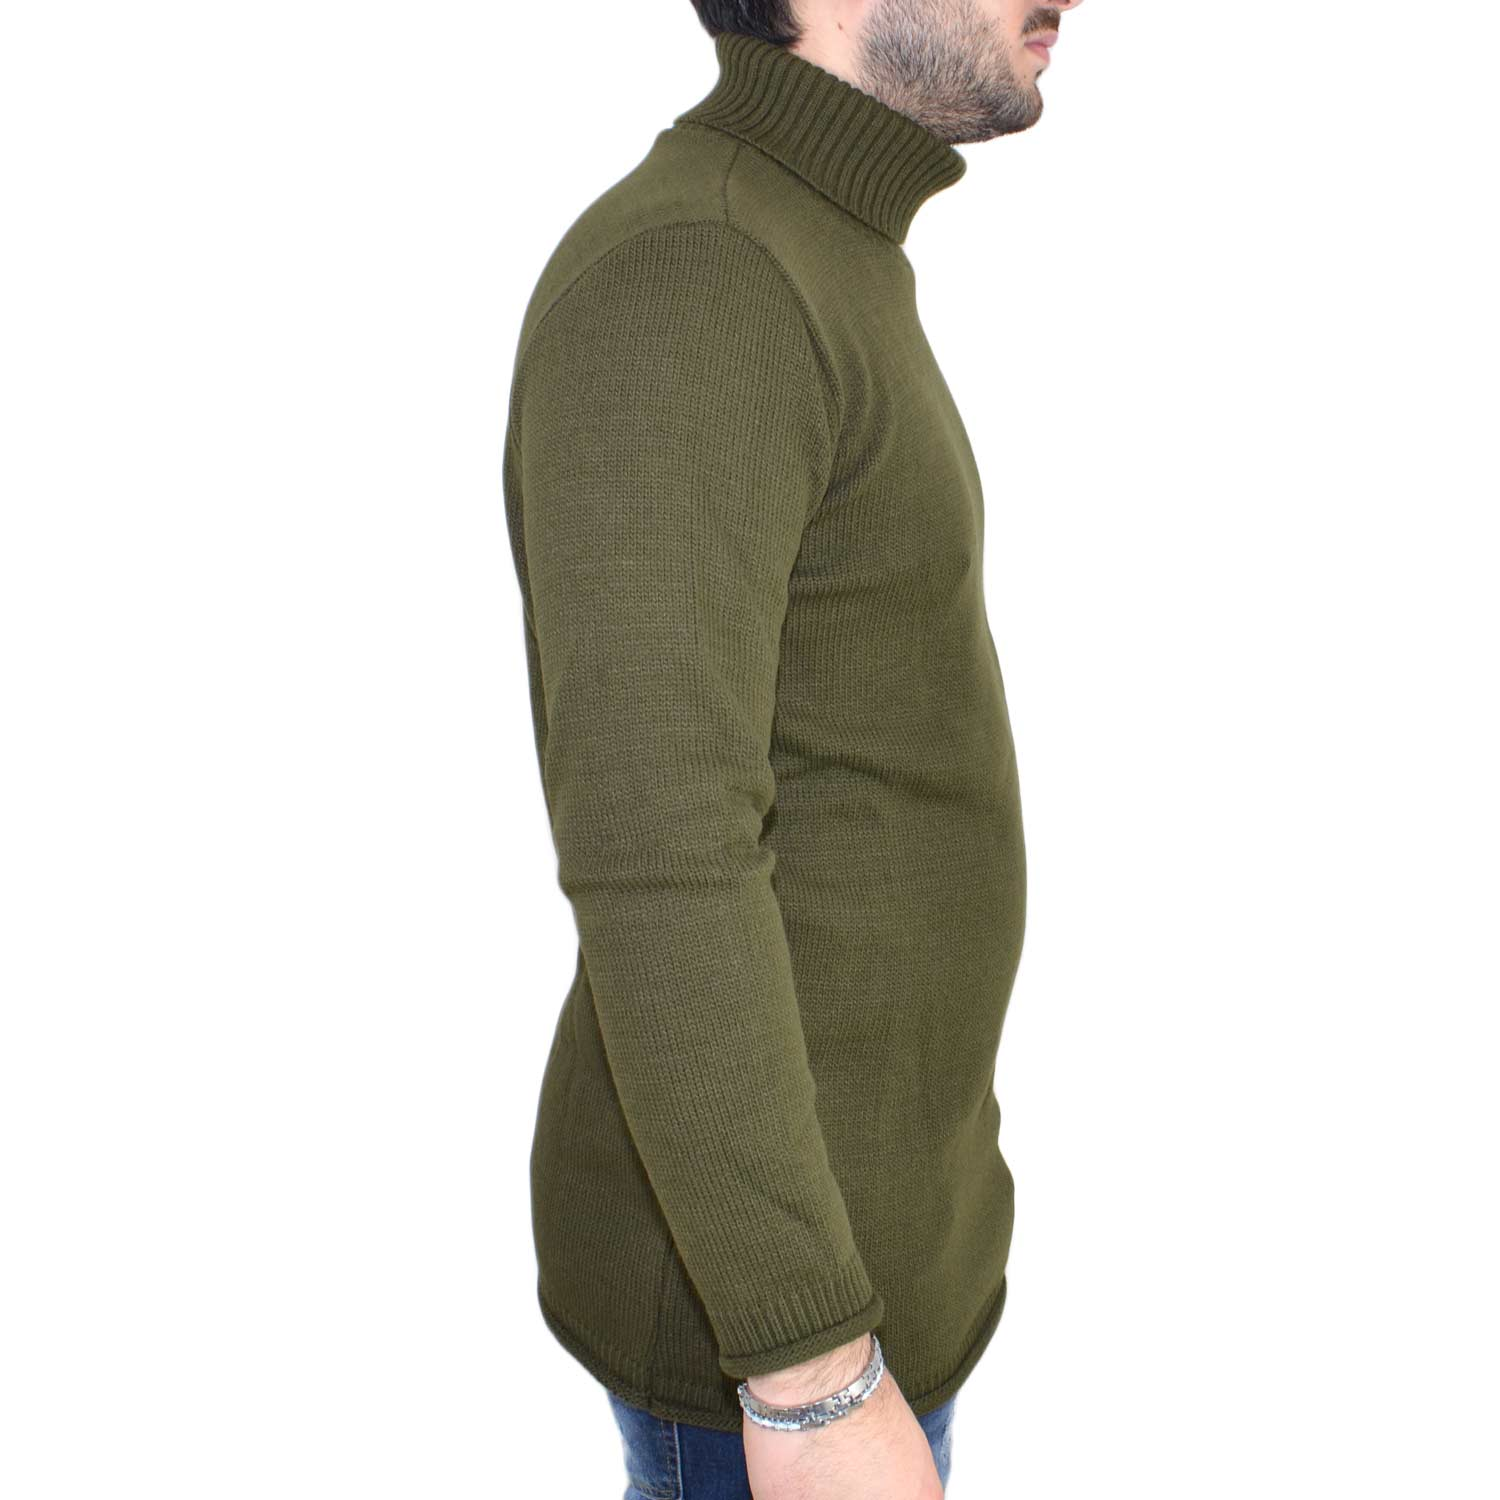 Maglione collo alto art..4432 verde made in italy moda tendenza slim.